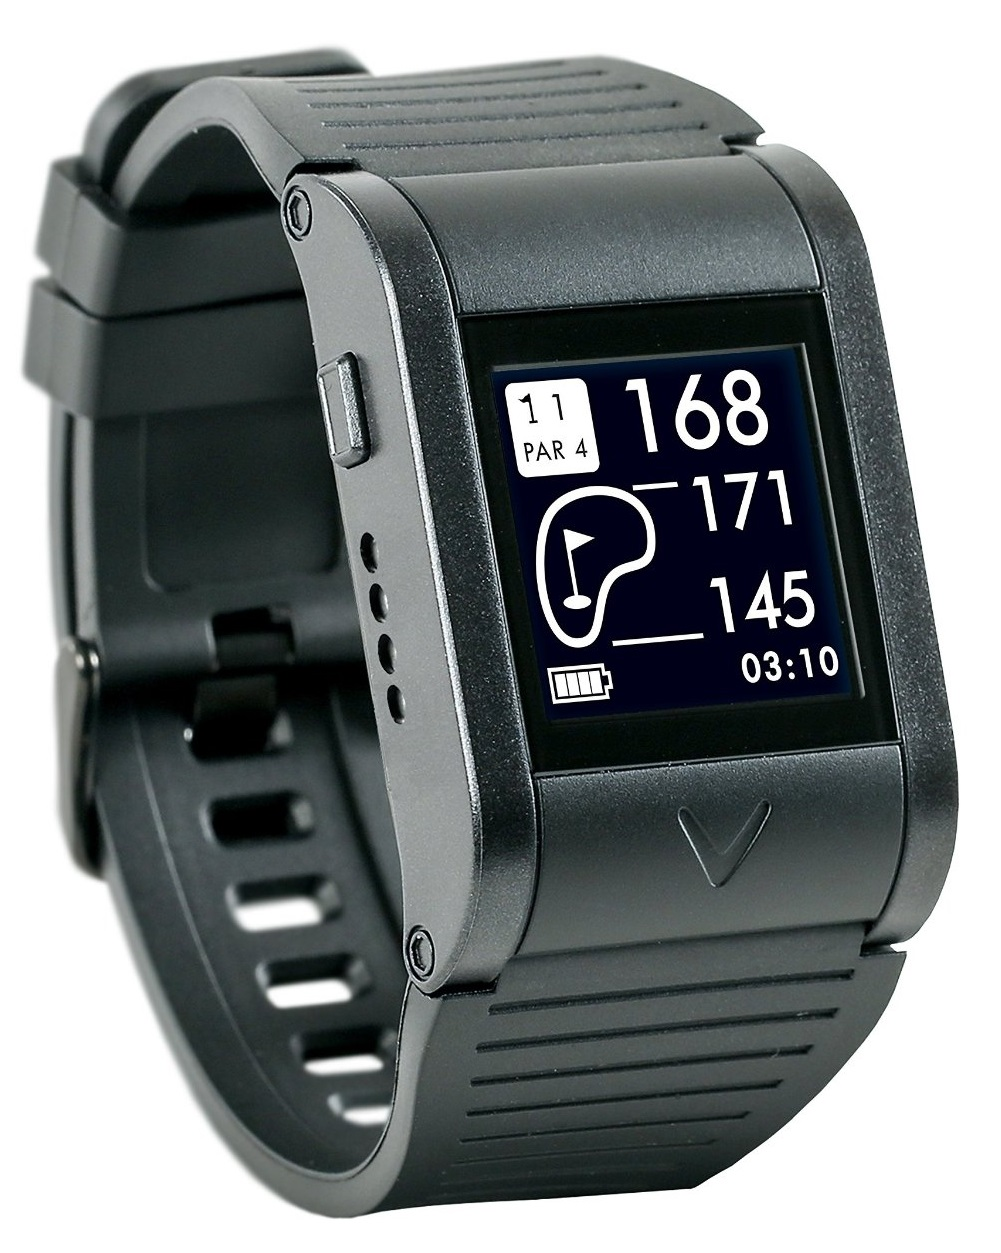 Callaway Golf GPS Systems & Watches